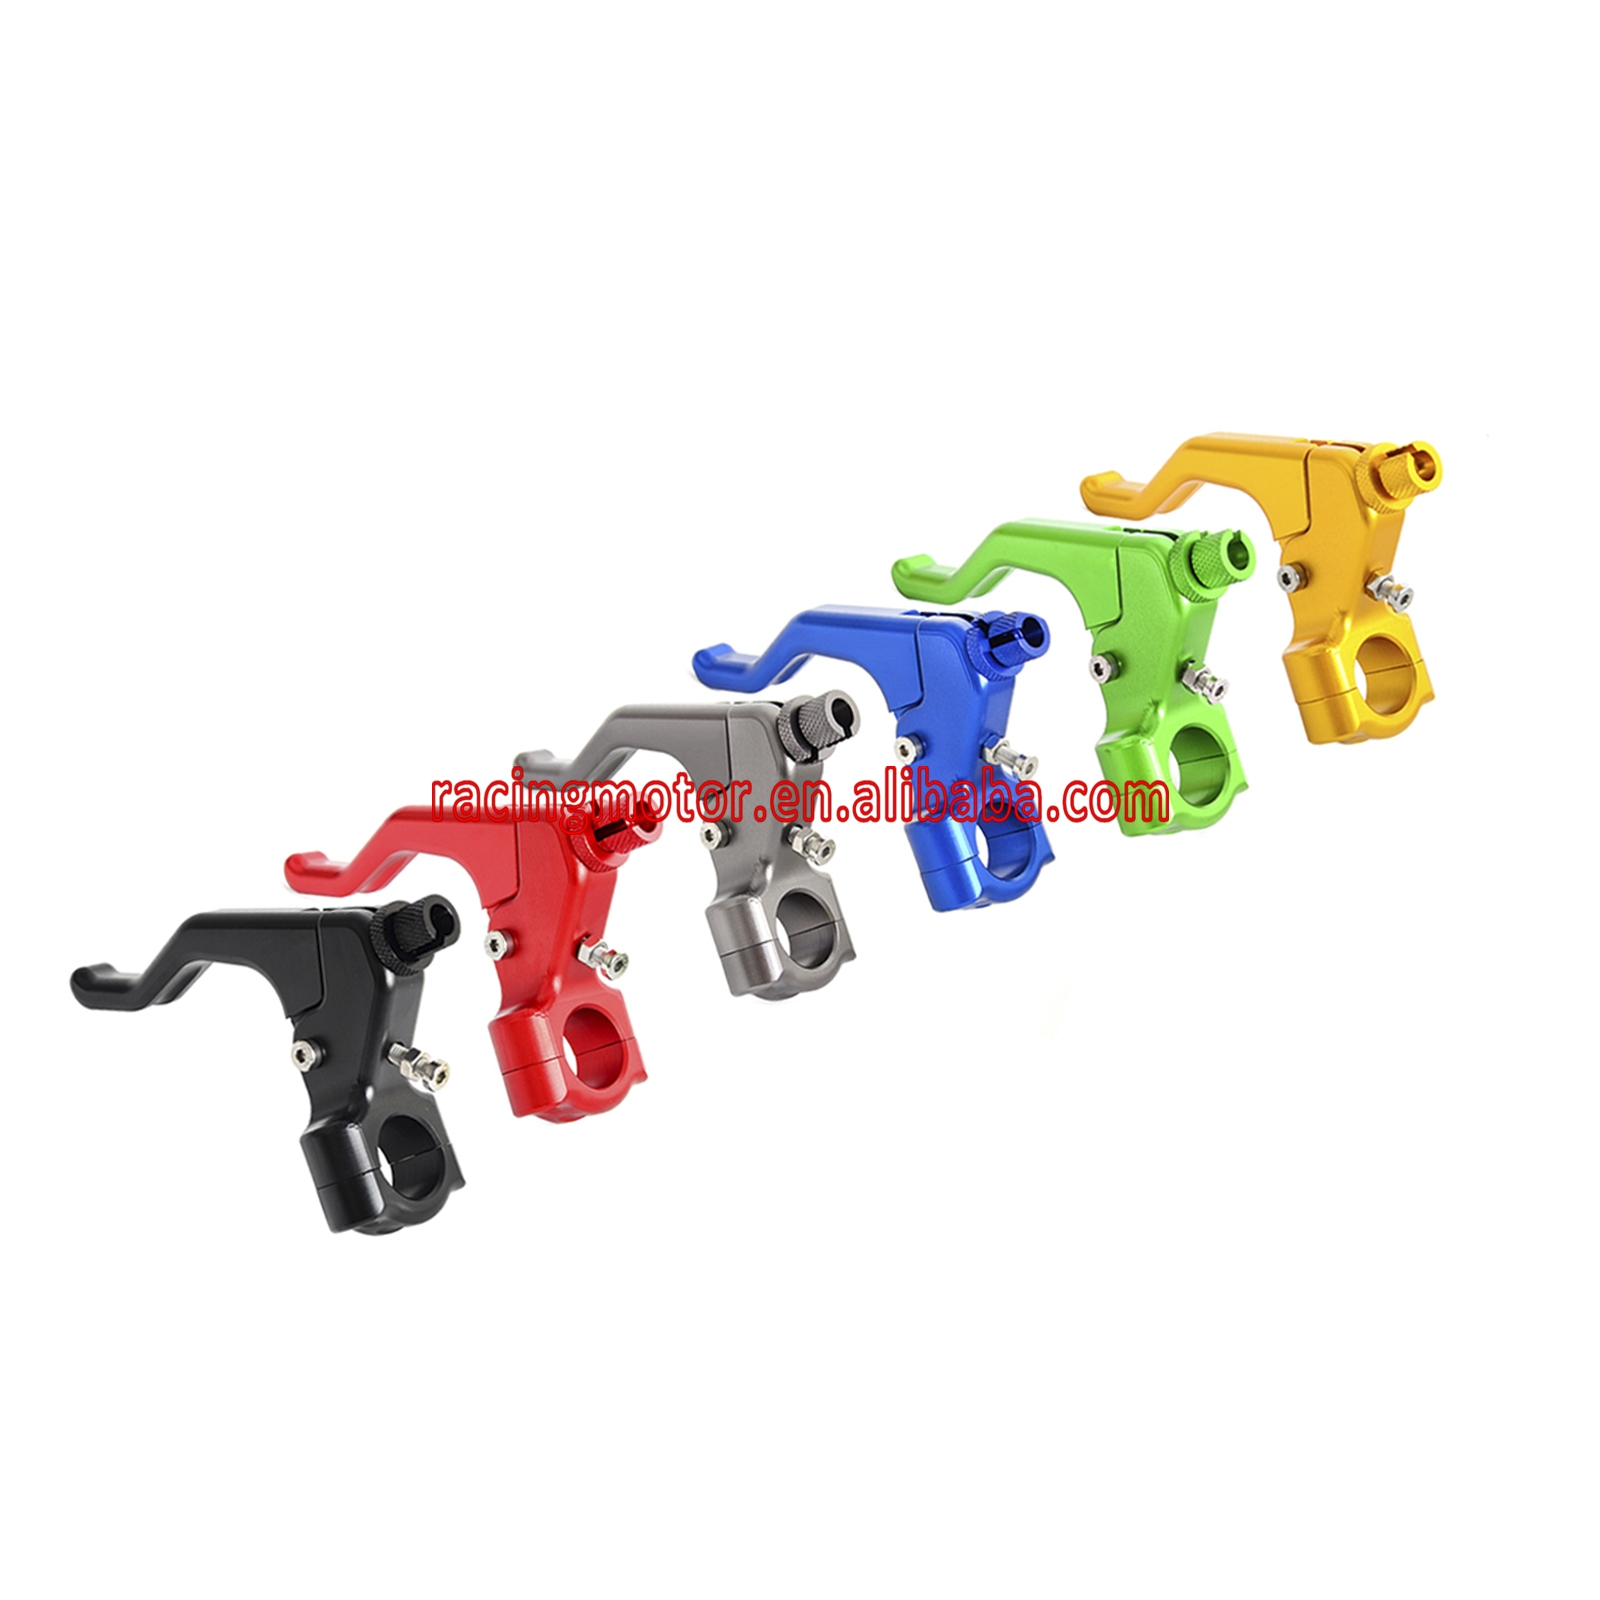 22MM 7/8 Handlebar CNC Short Stunt Clutch Lever Perch Assembly For Honda Suzuki Yamaha Kawasaki Triumph motocross mx dirt bike 22mm 7 8 handlebar cnc short stunt clutch lever perch assembly 6 color options